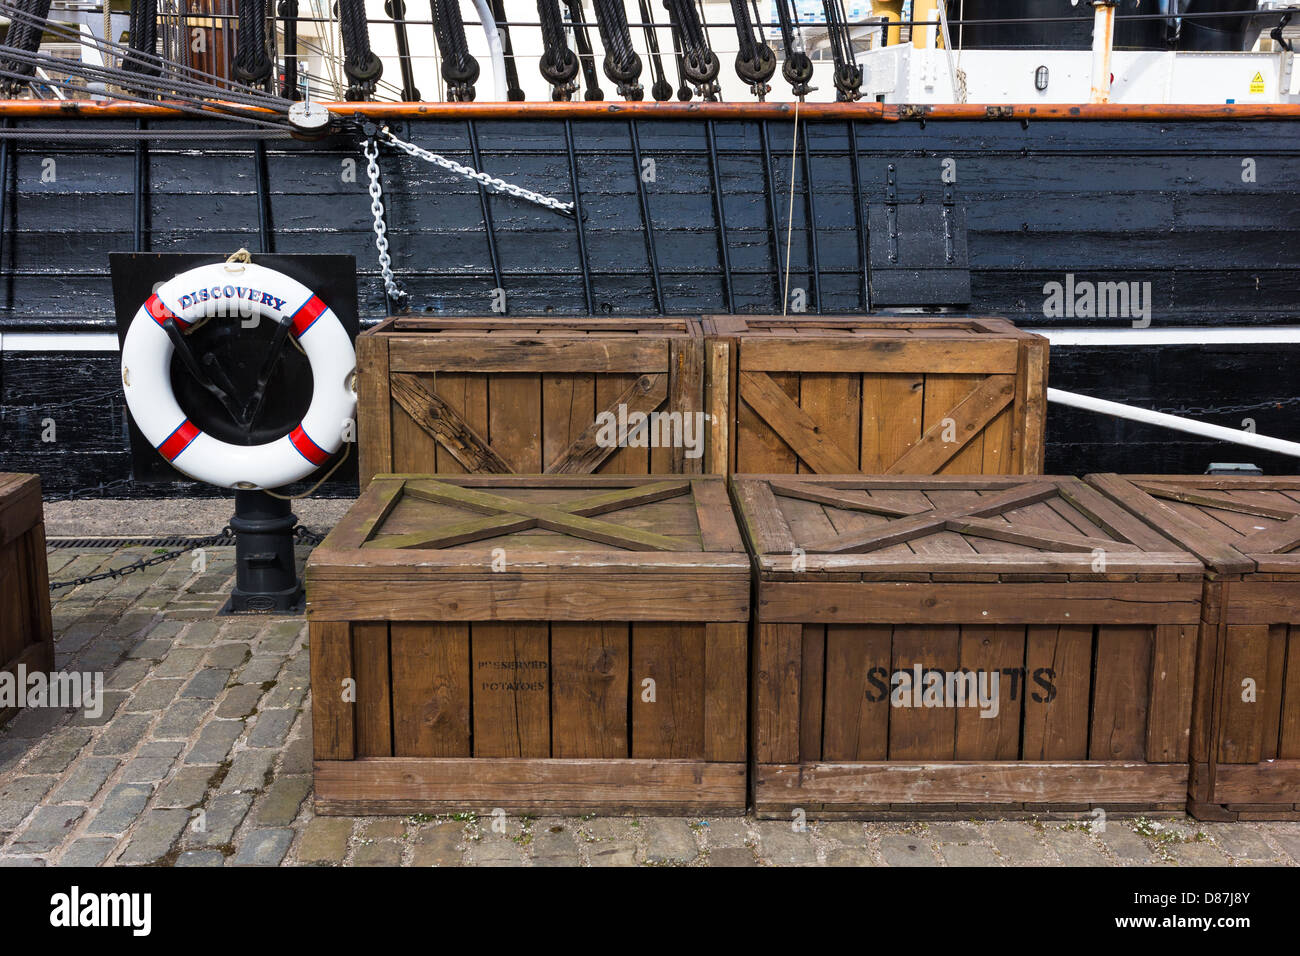 Stores,supplies ready for loading, quayside at RSS Discovery. Discovery point Dundee - Stock Image